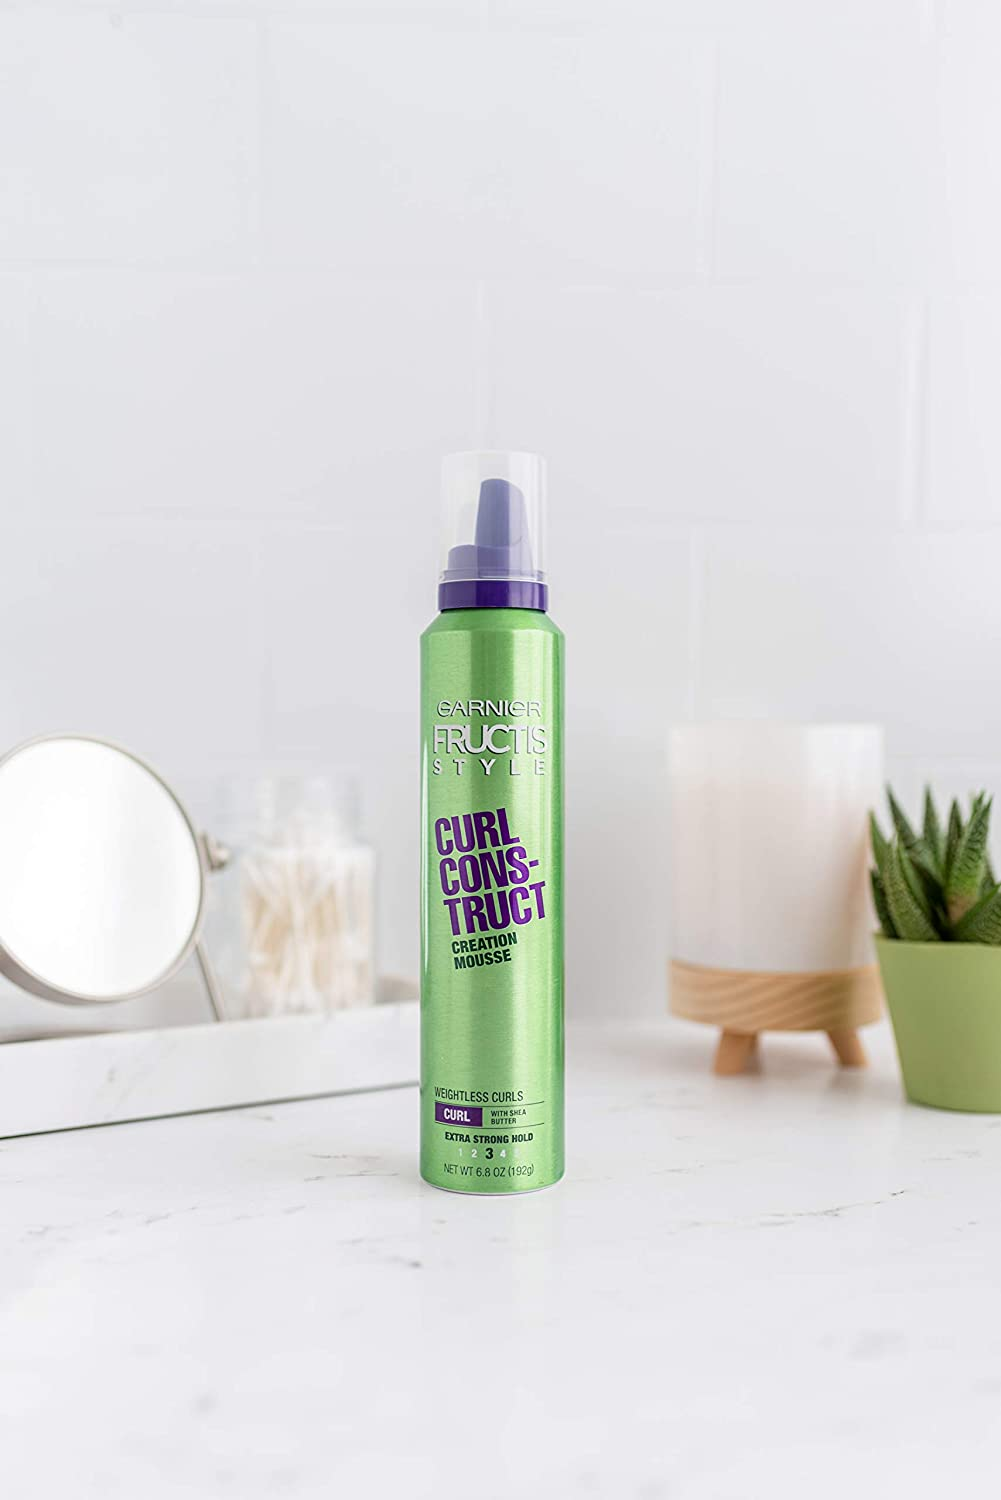 Garnier Fructis Style Curl Construct Creation Mousse, Curly Hair, 6.8 oz. : Curl Enhancers : Beauty